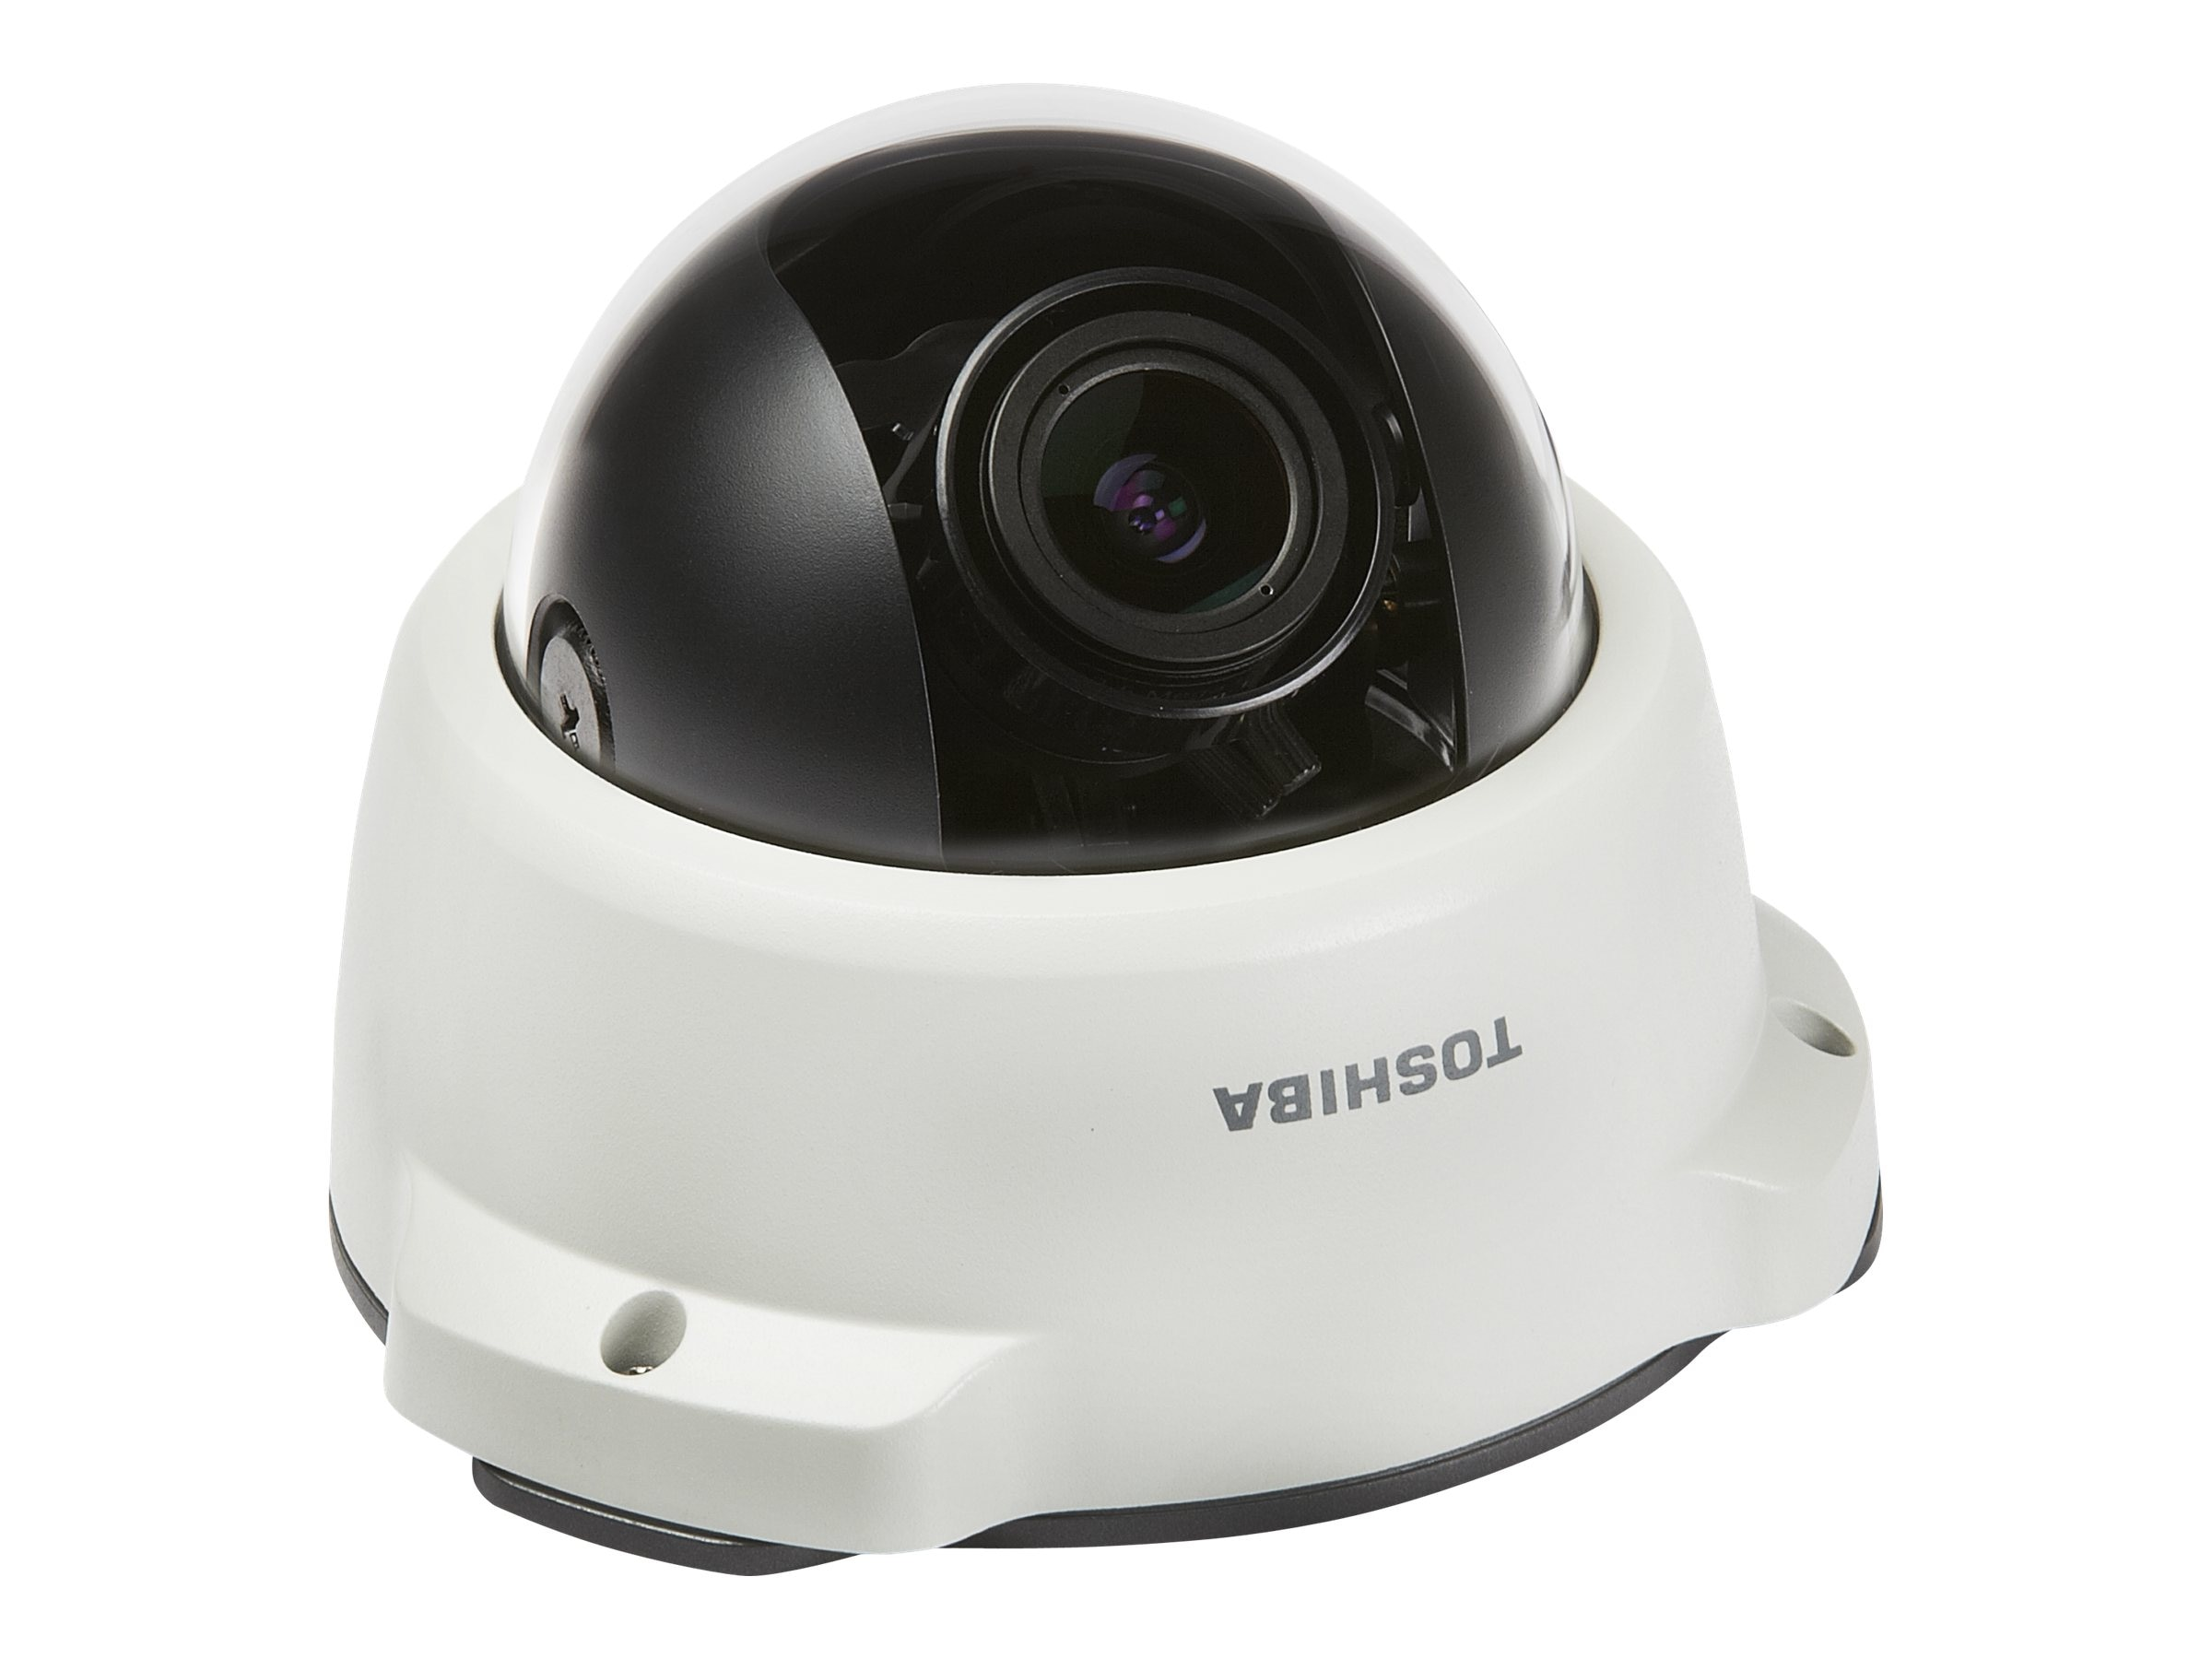 Toshiba IP66 Mini-Dome Vandal-Proof Netowrk Camera, 3-12mm, IK-WR04A, 15320664, Cameras - Security